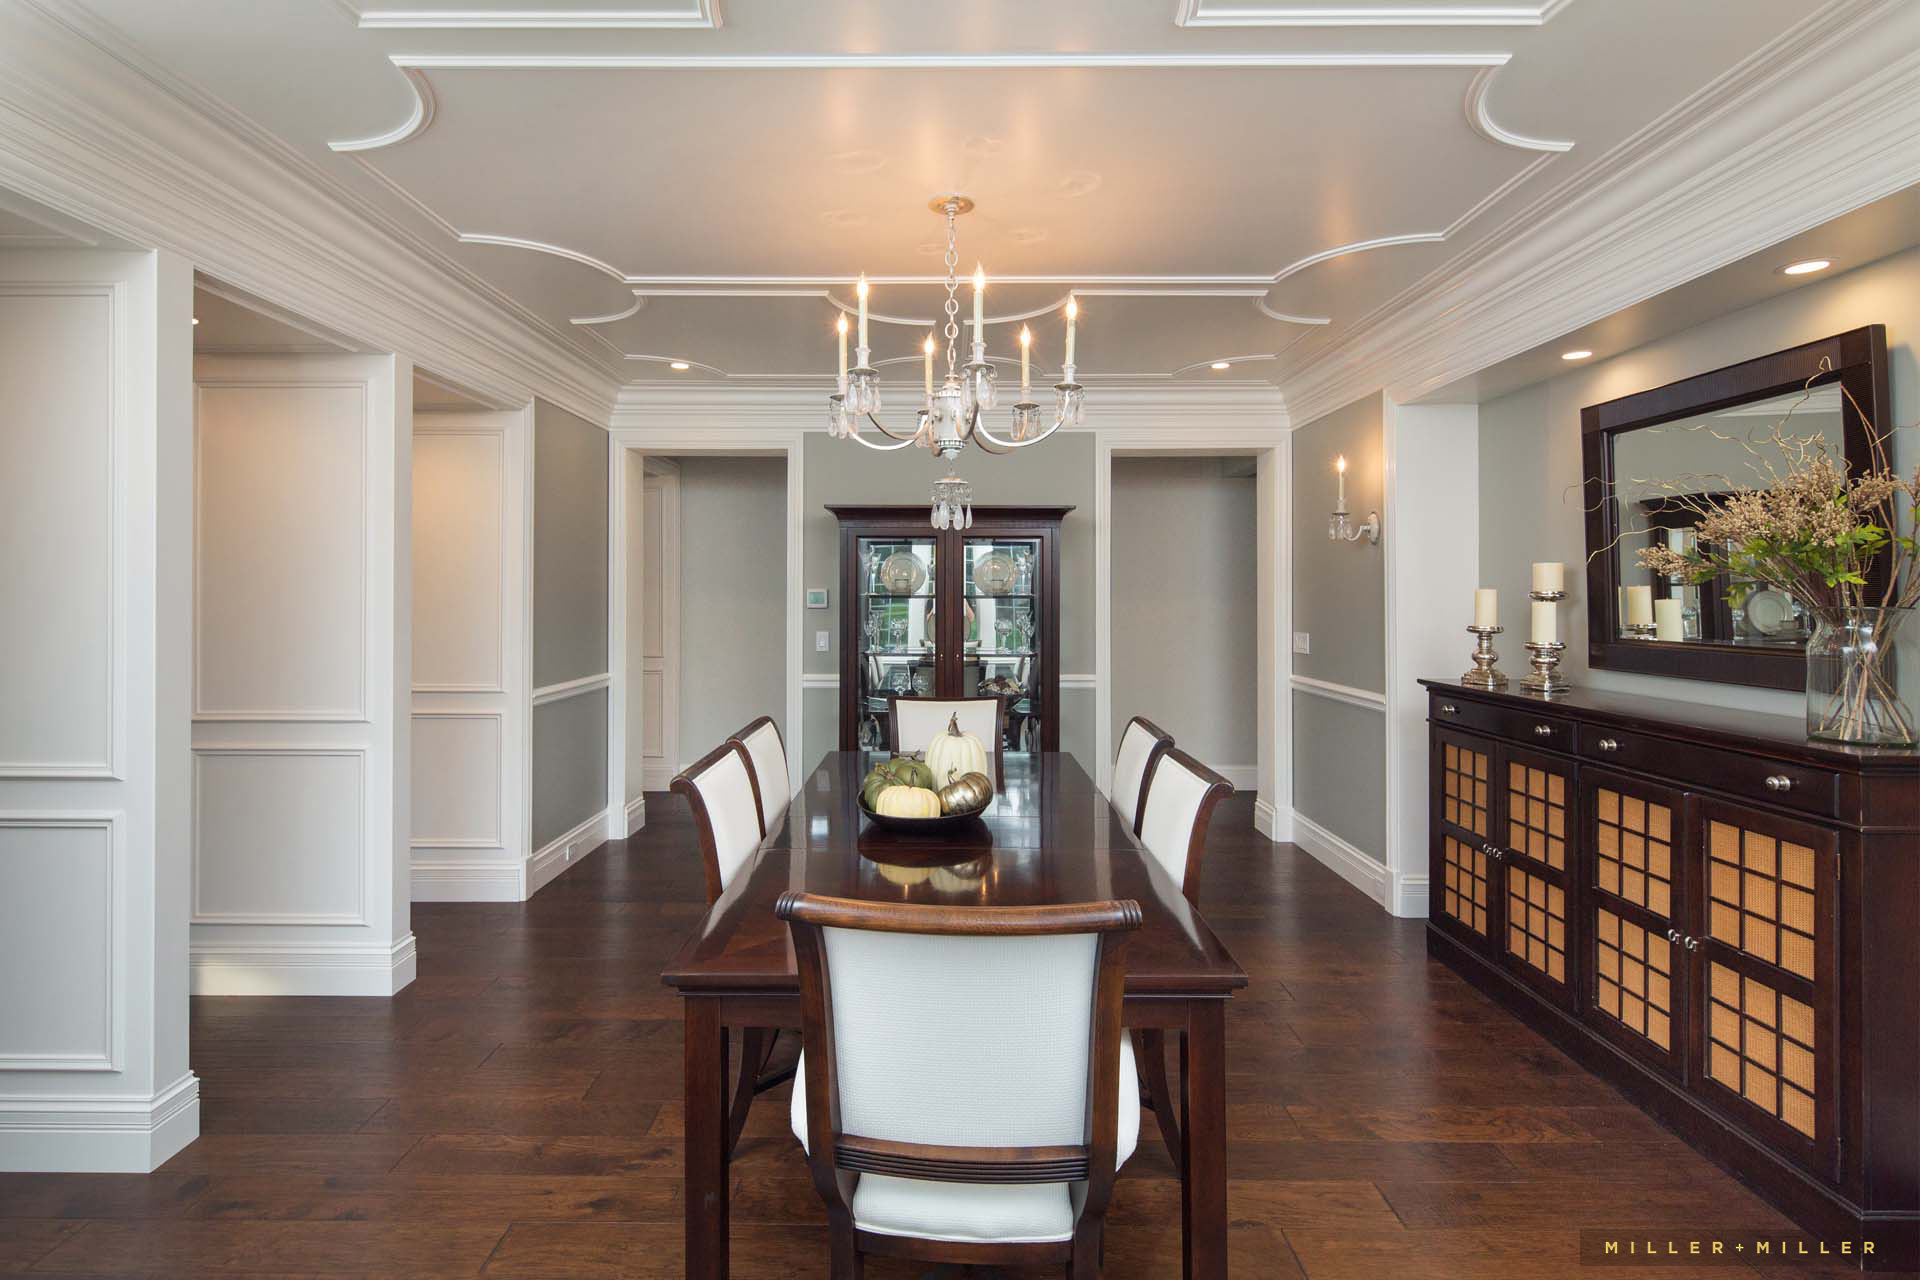 dining-room-ceiling-millwork-elaborate-crown-molding